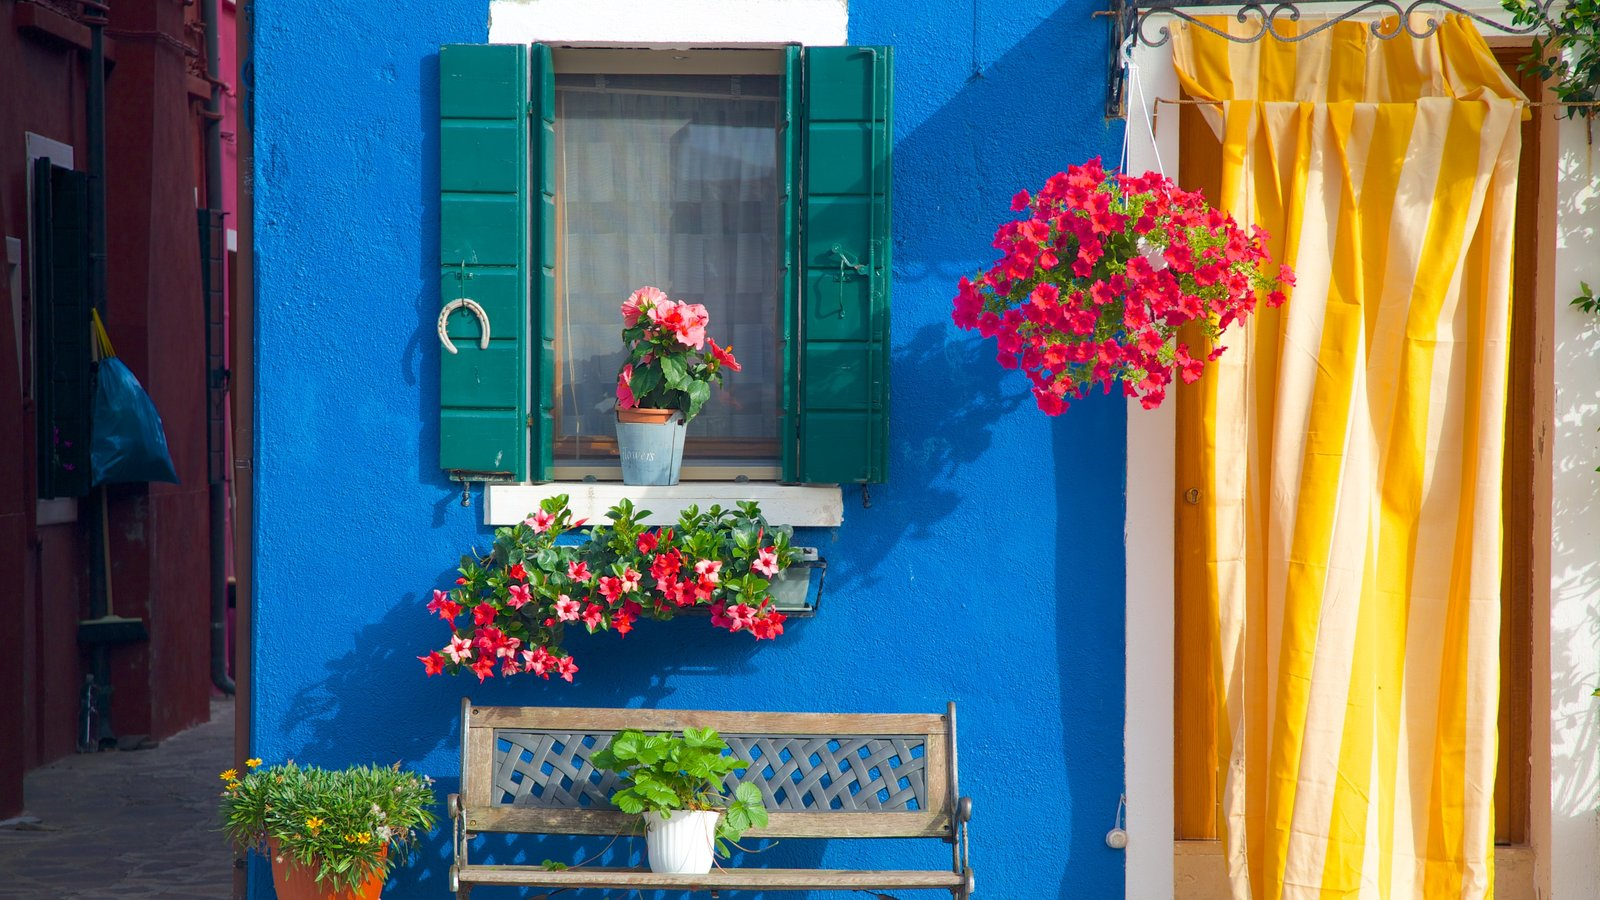 Burano showing flowers, a house and heritage architecture